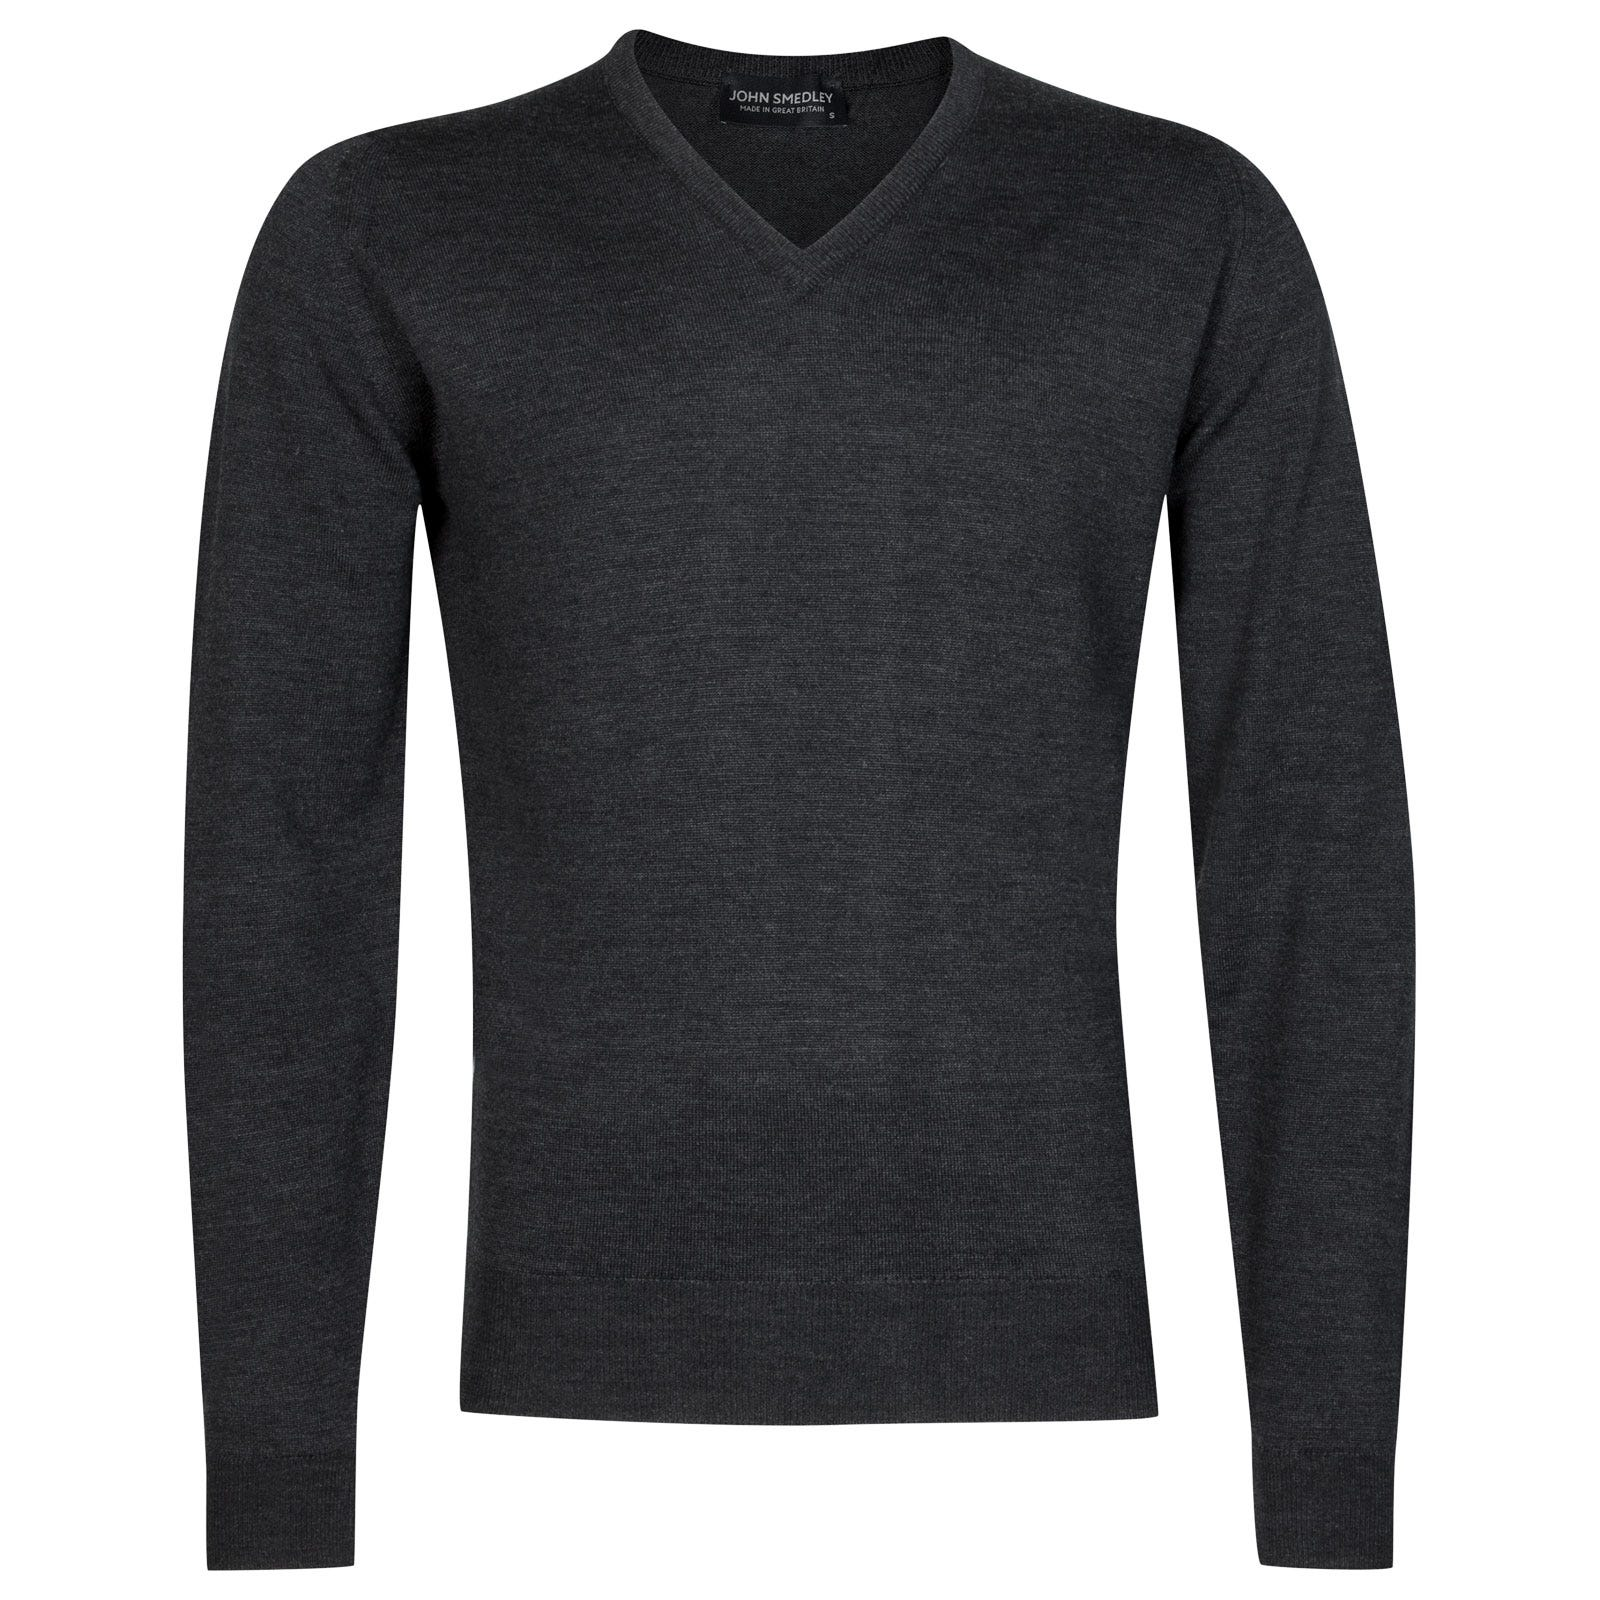 John Smedley Riber Merino Wool Pullover in Charcoal-S